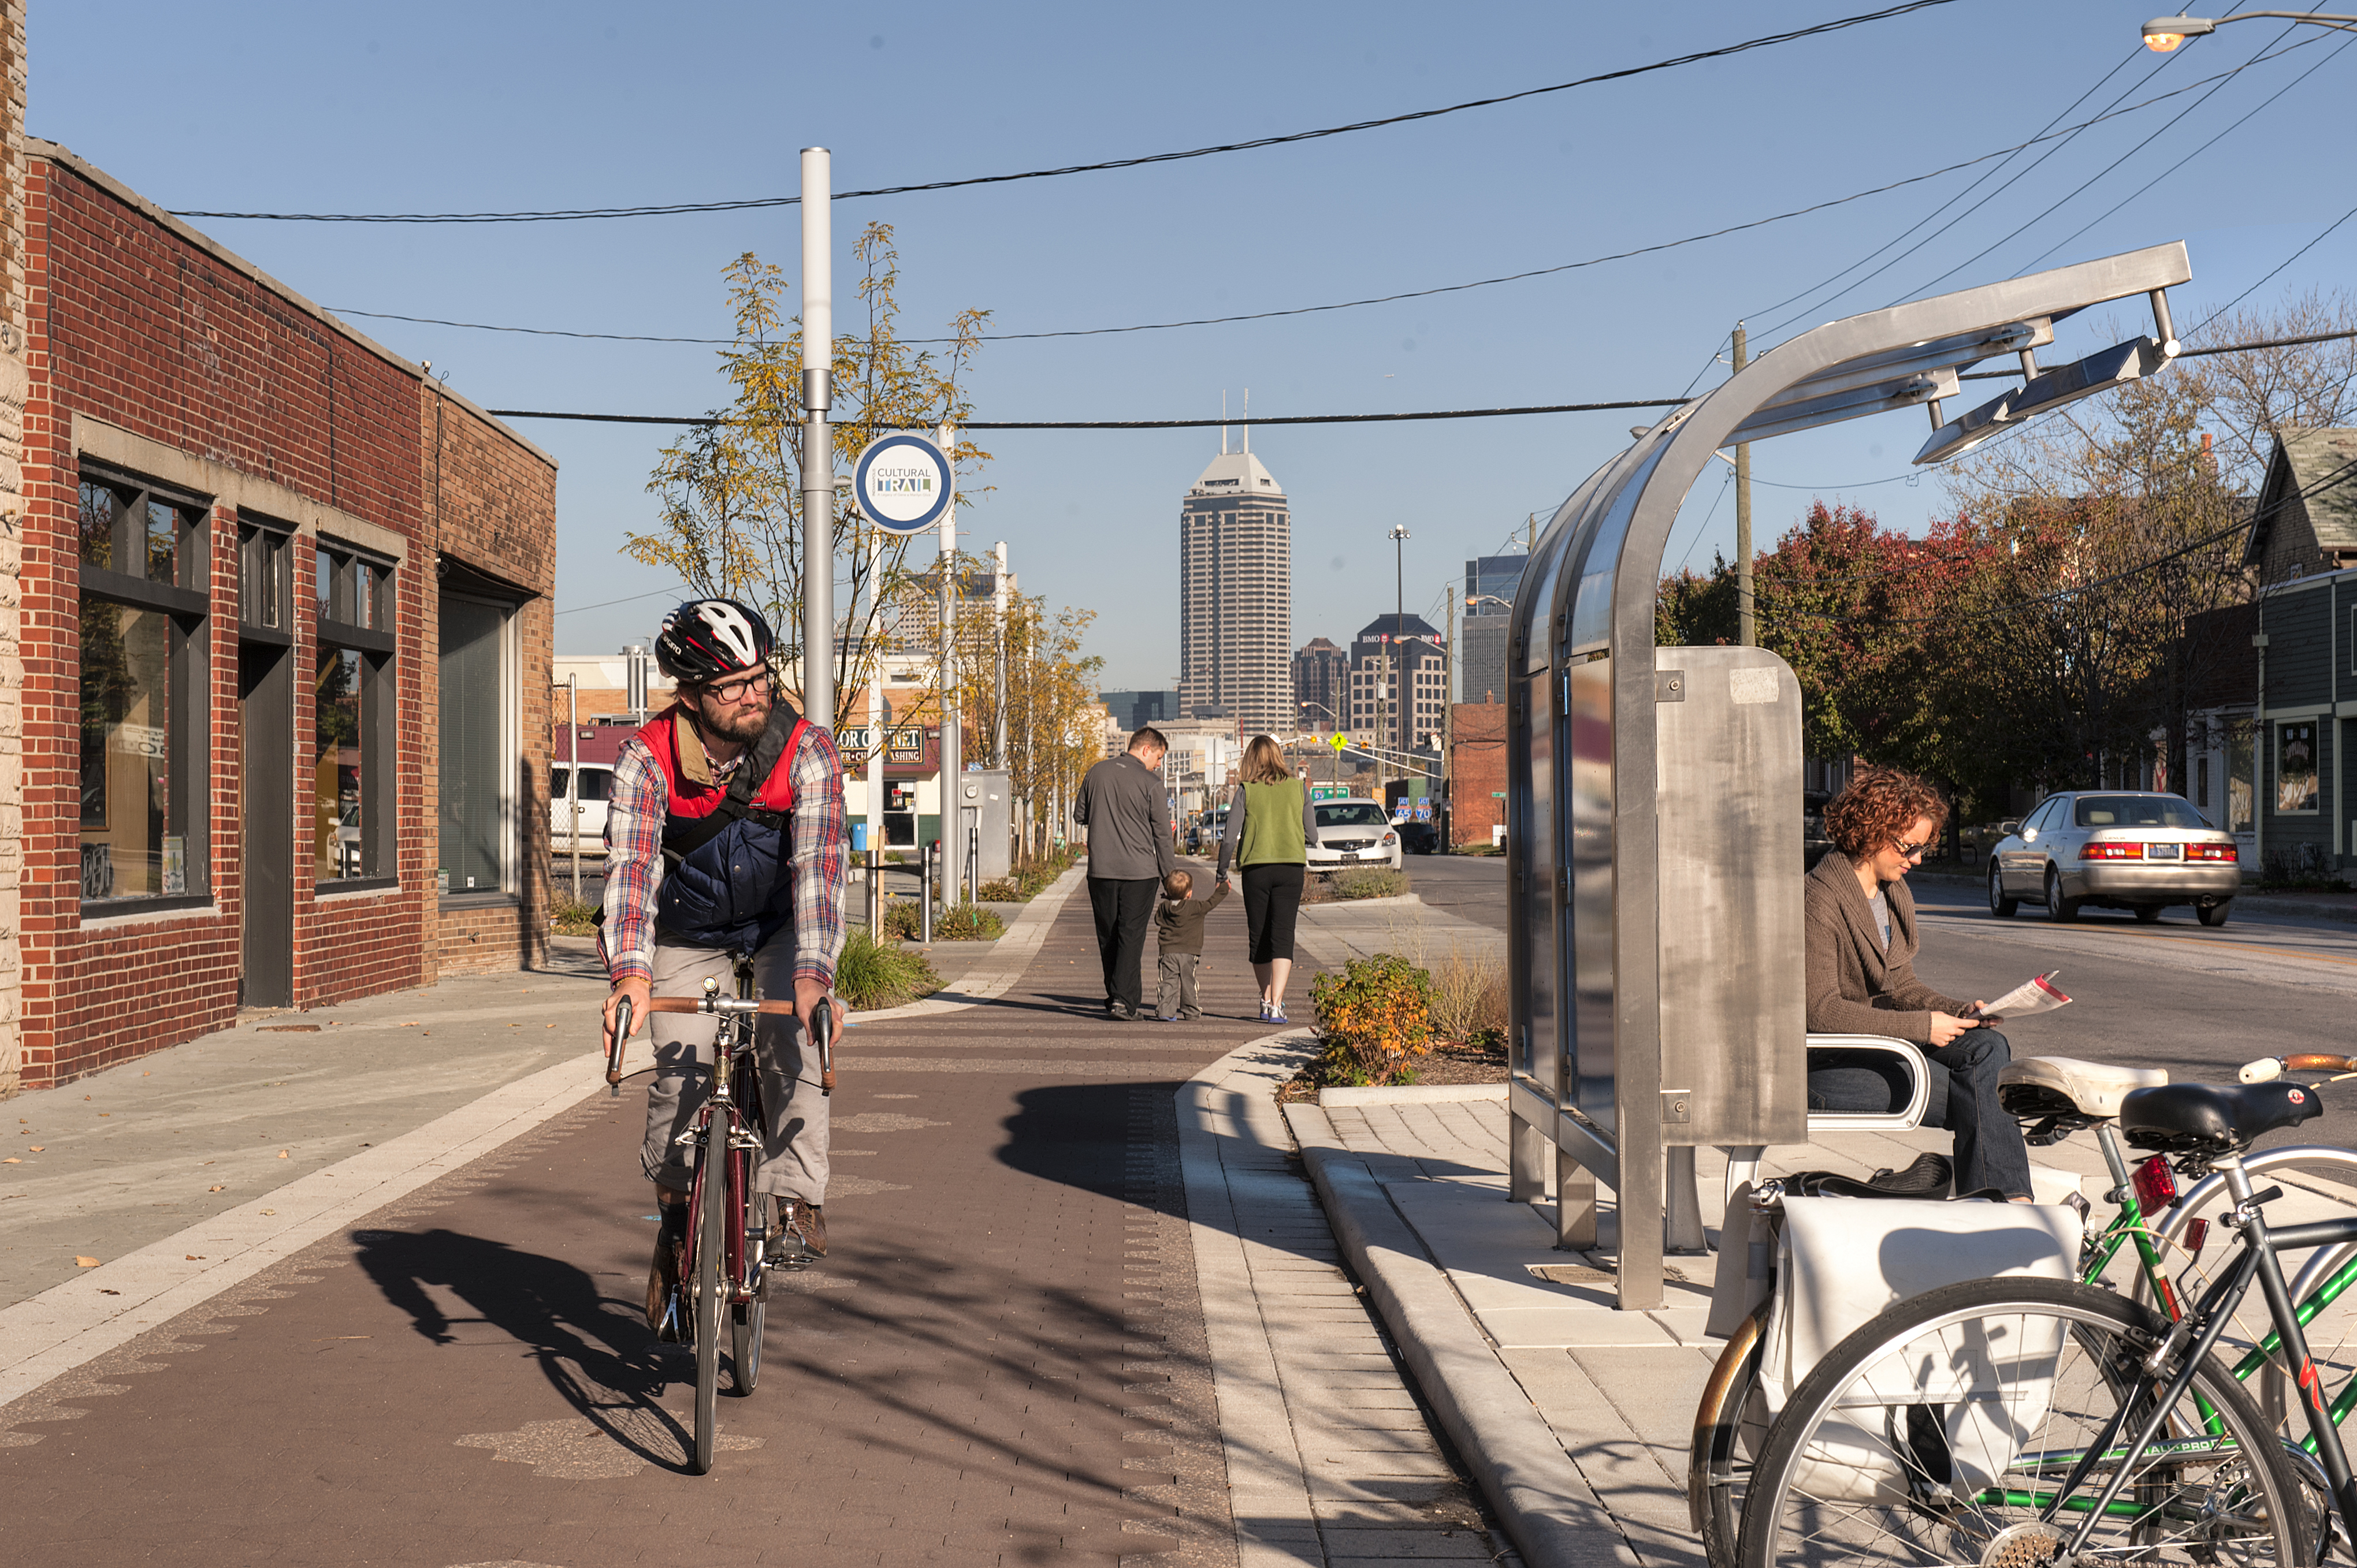 The ICT supports multimodal connectivity with custom designed transit stops along the trail corridor.